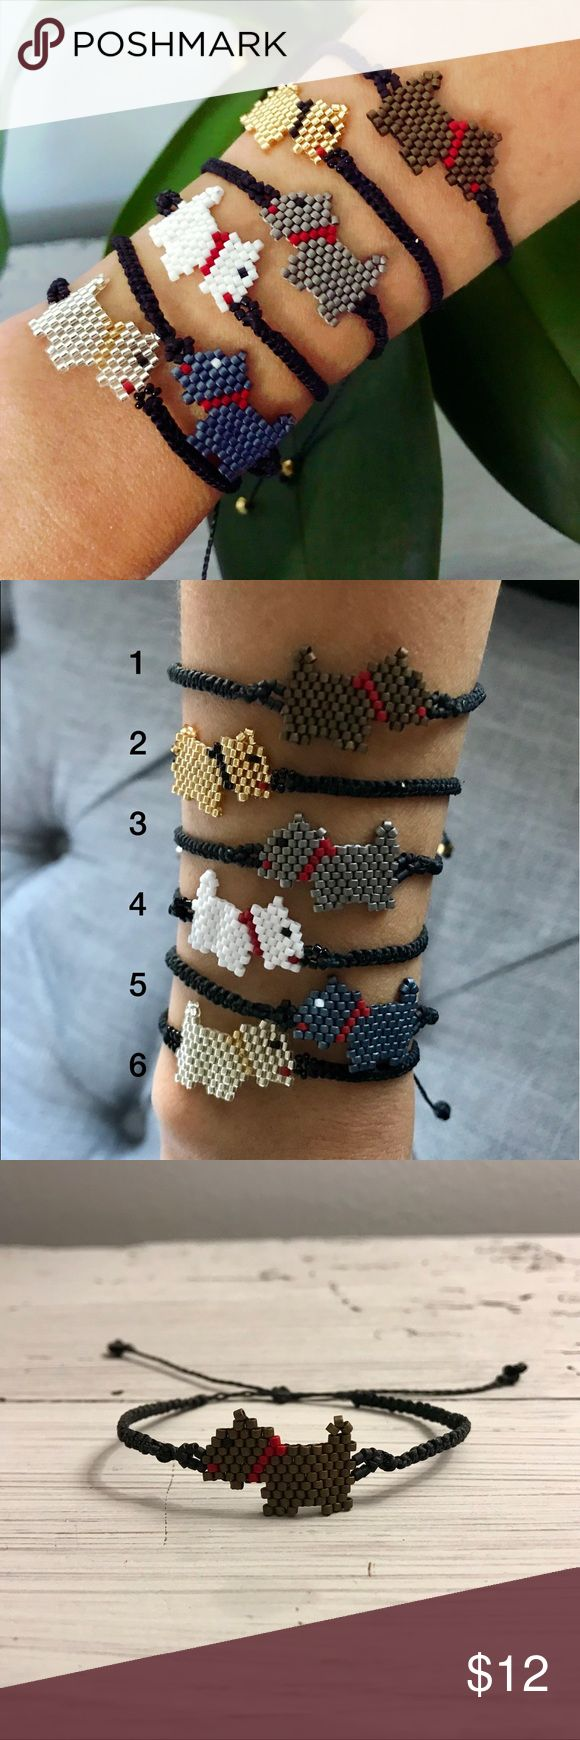 Cute Handmade Dog Bracelets! *Handmade from artisans of Jalisco, Mexico                        *Bracelet is adjustable                                                             *Made of waxed thread and fine beads. Swarovski crystals.                                                                                    *Huichol Art.                                                                           *Great for yourself or as a gift, kids love them!                    *Price is Firm…